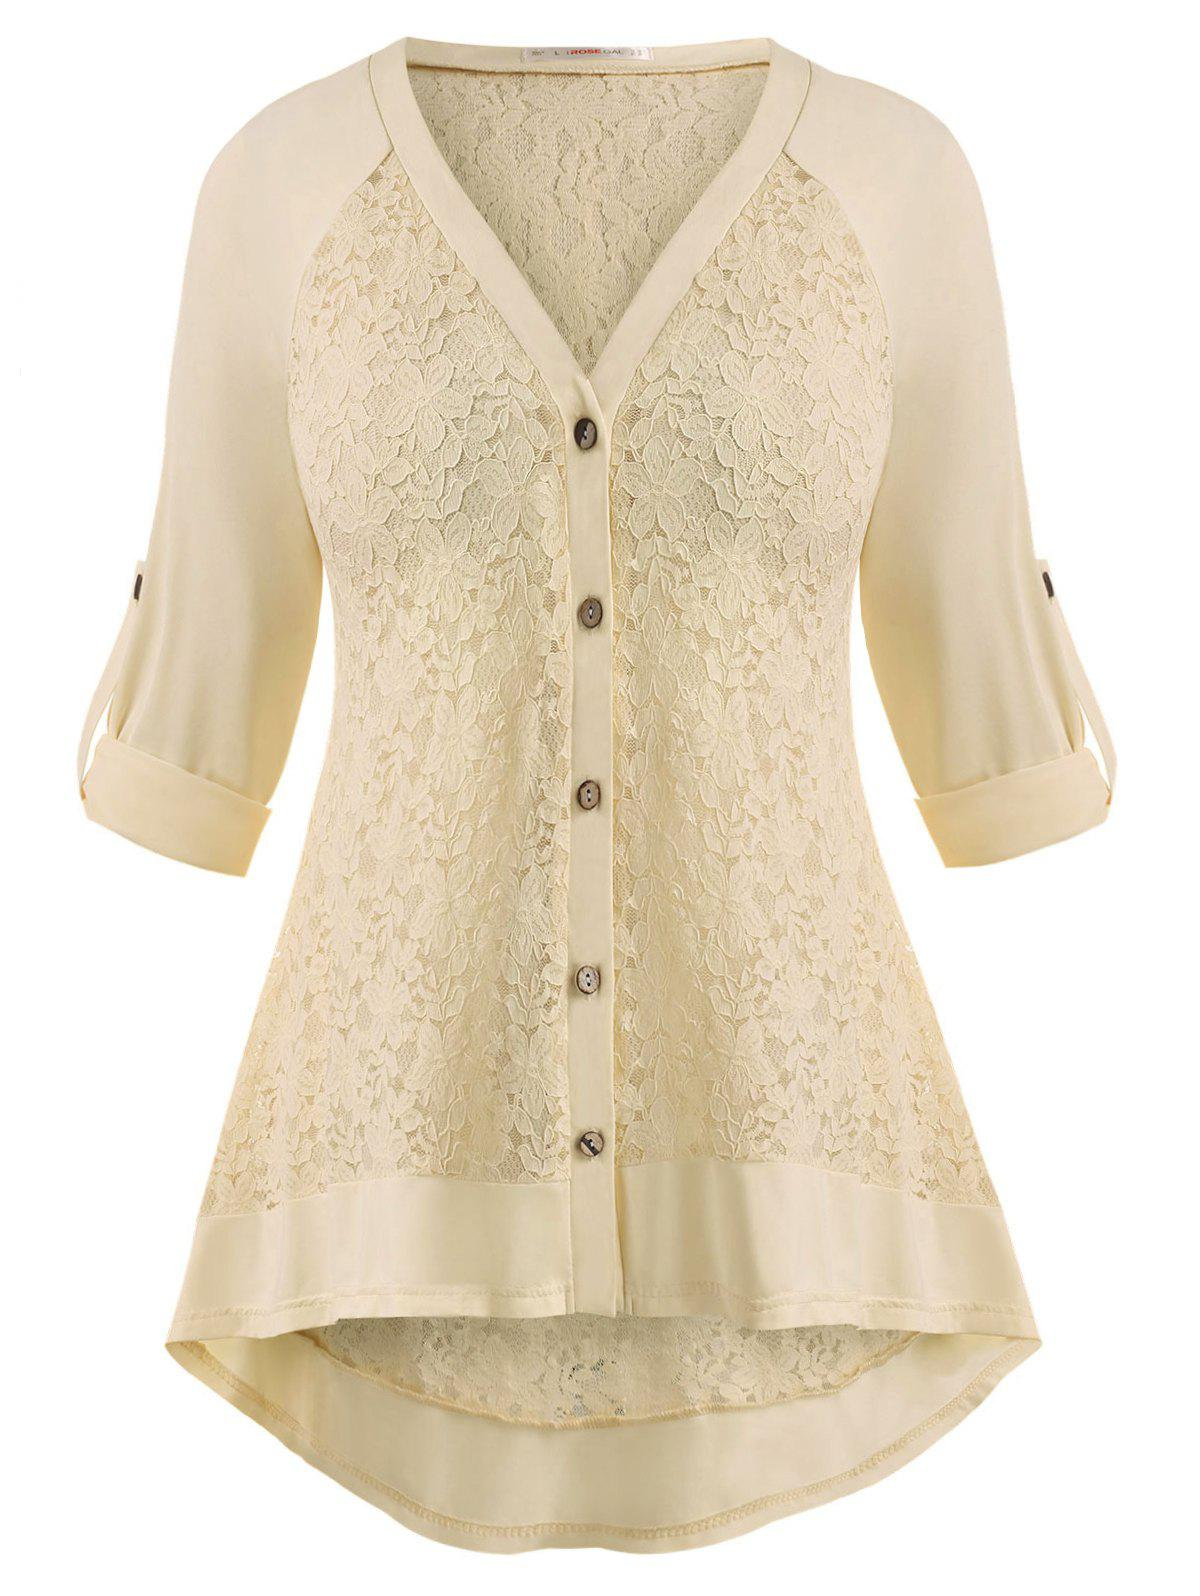 Fancy Raglan Sleeve Lace Panel Button Up Plus Size Top